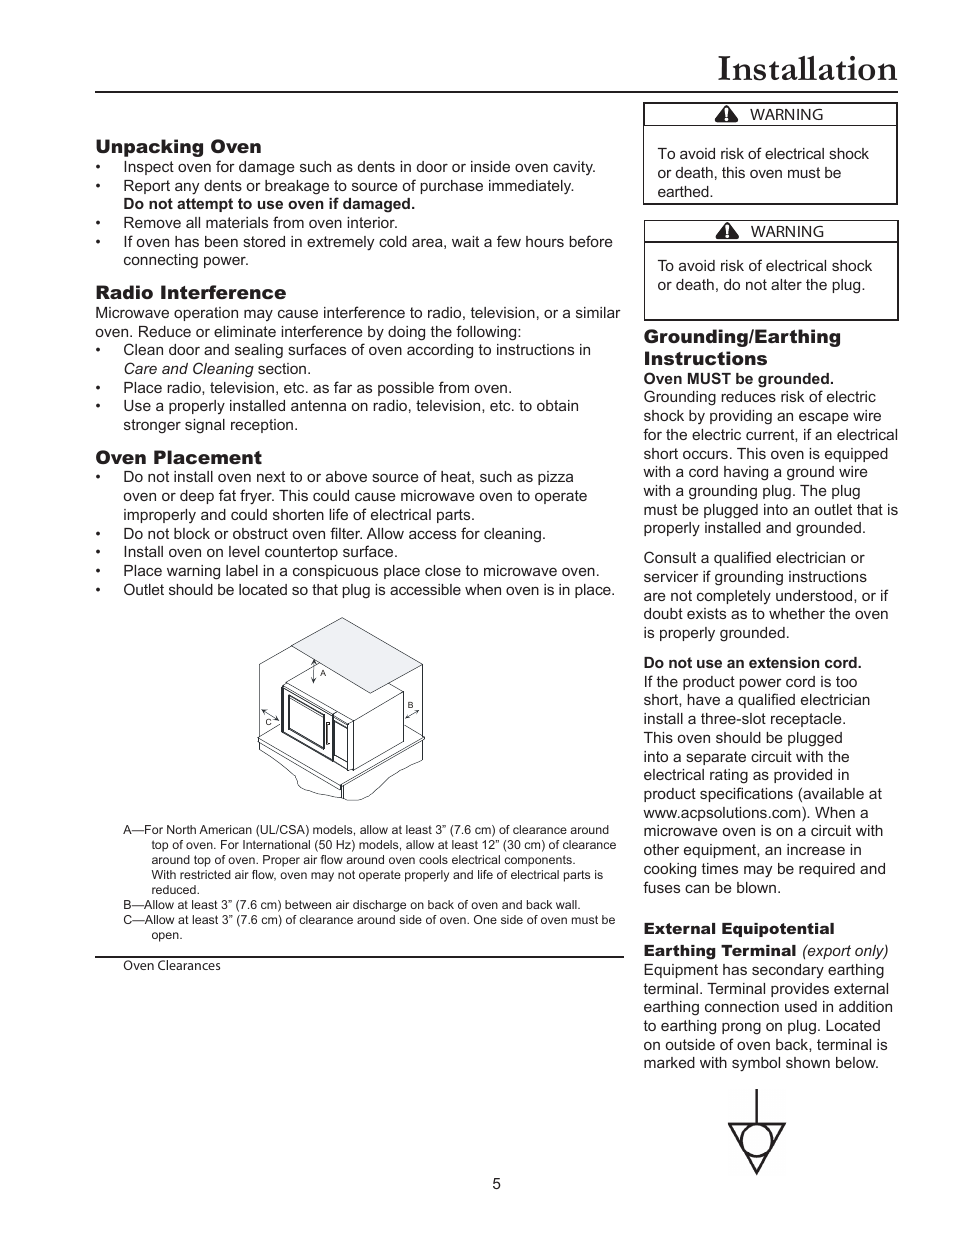 Installation Acp Rms10ts Owners Manual User Page 5 12 Symbol For Electrical Outlet Additionally Wiring